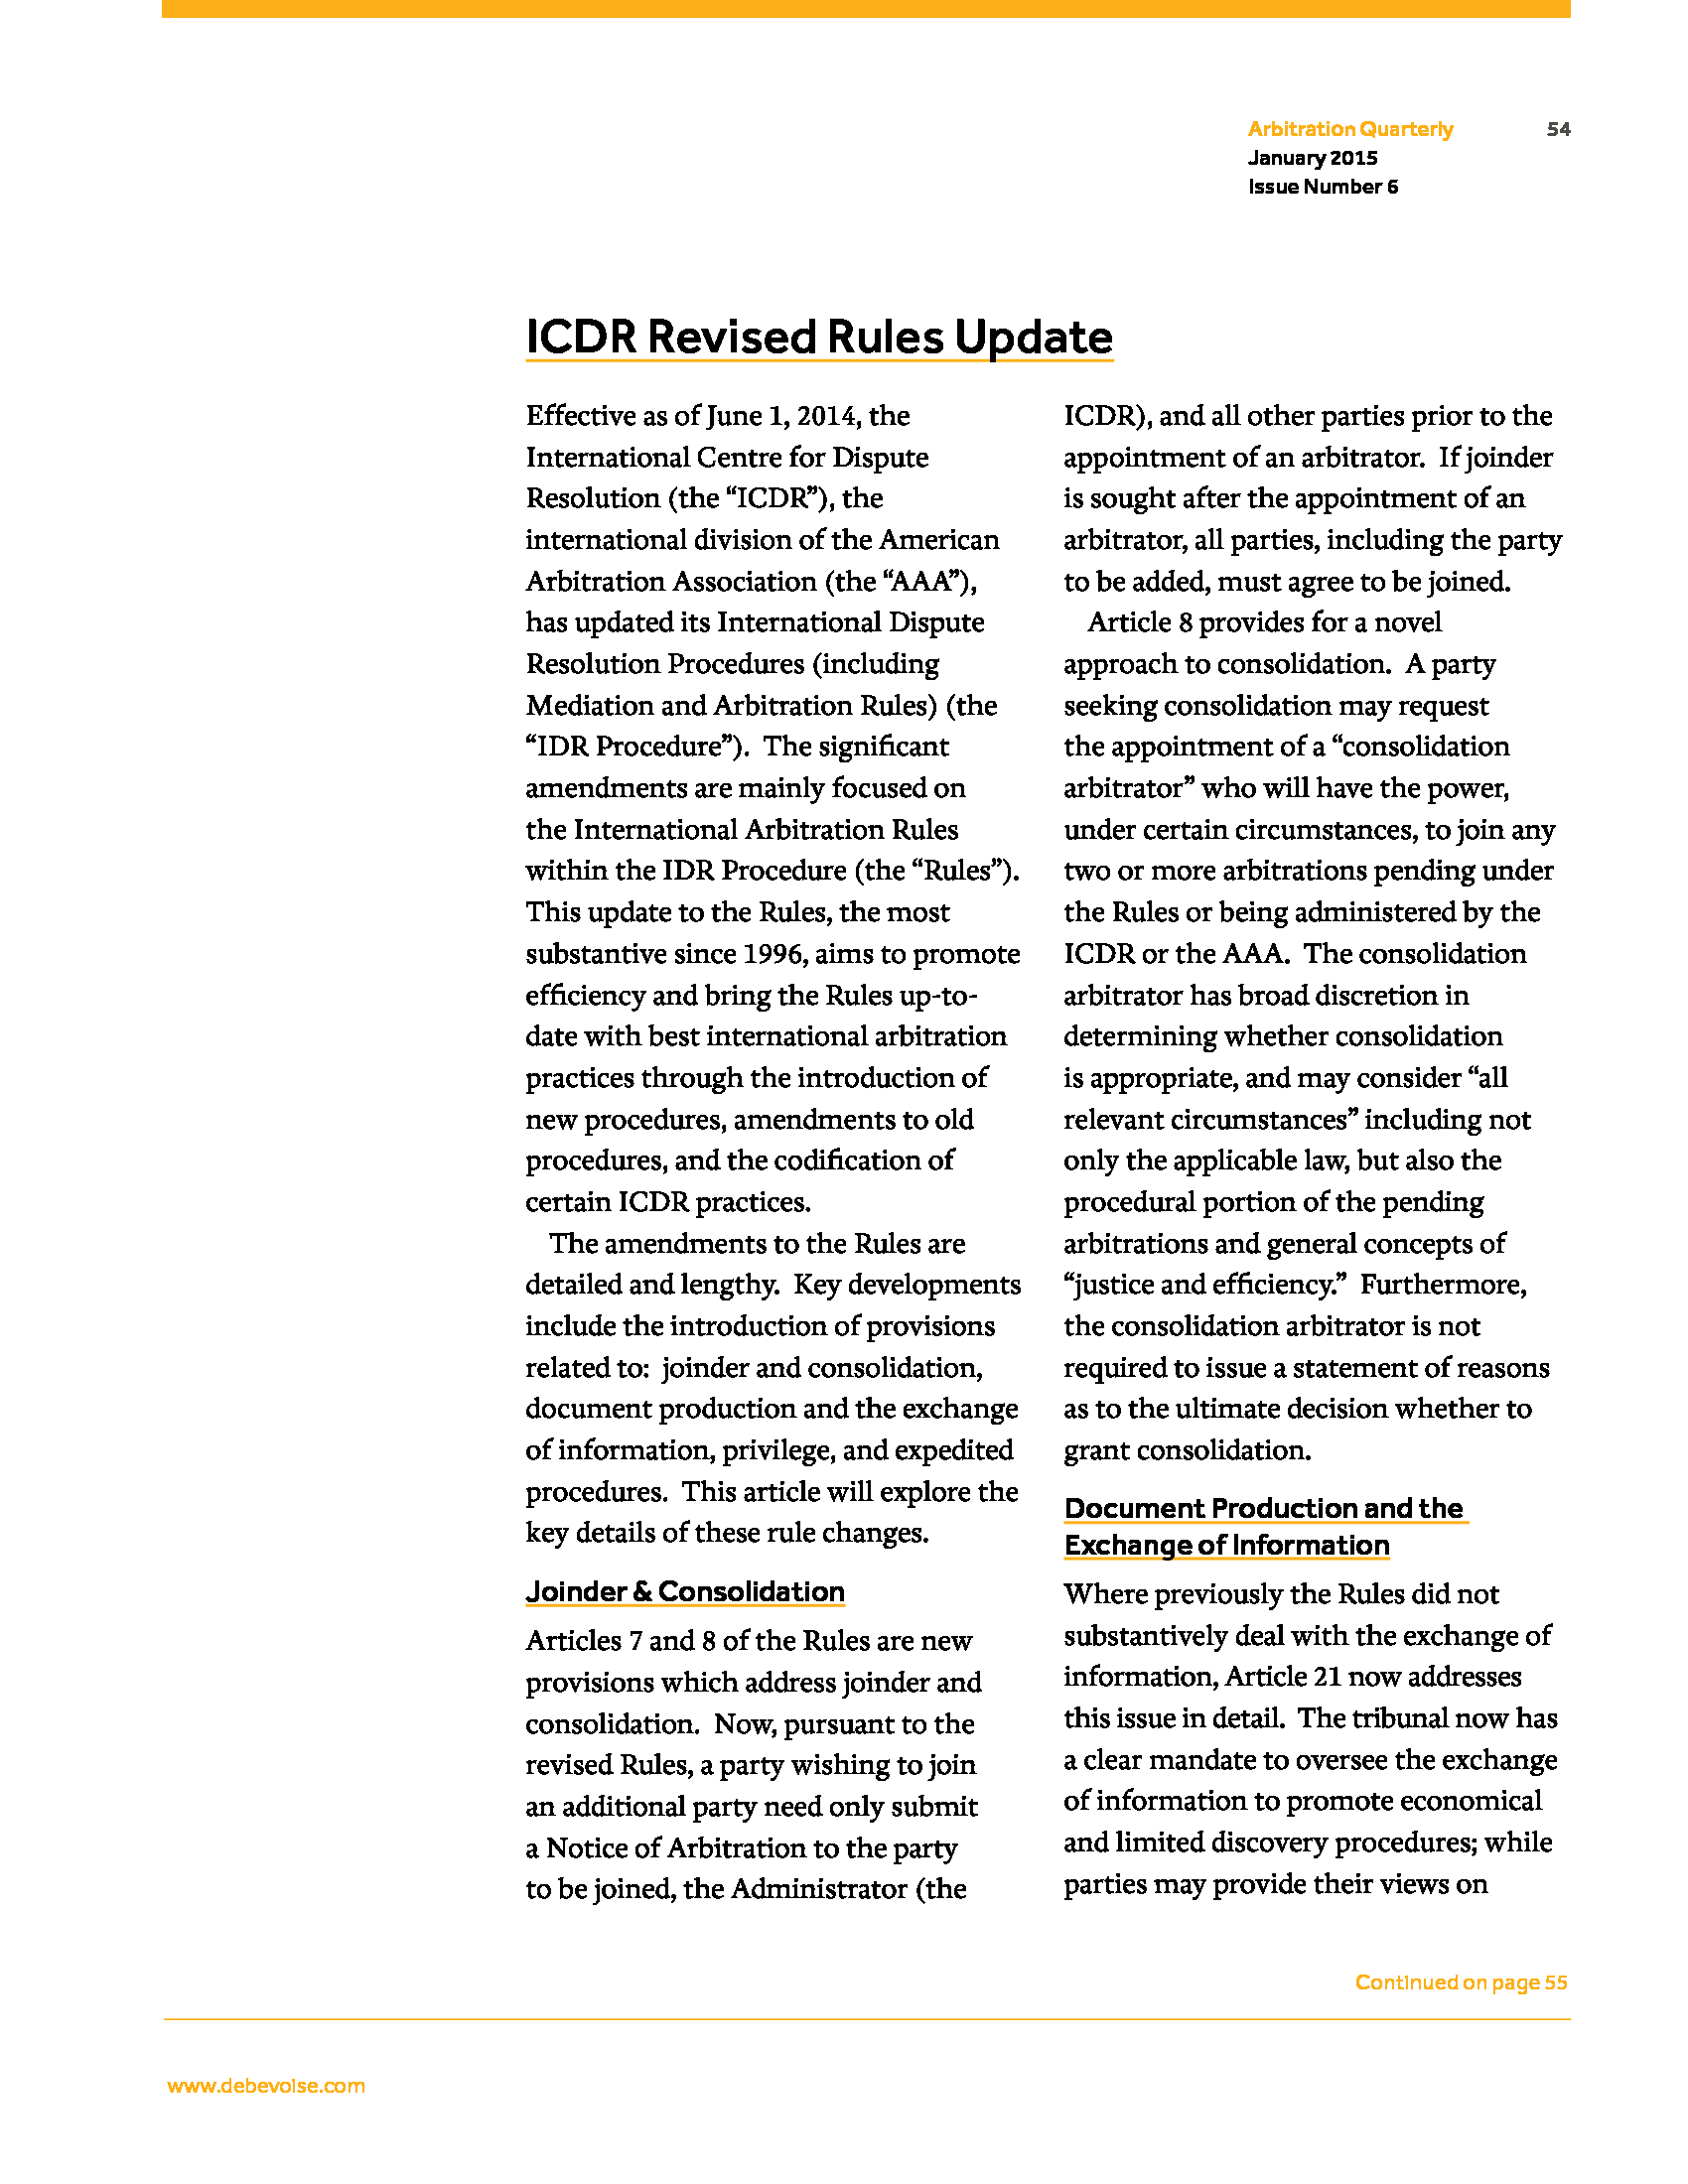 Hkiac rules consolidating student loans